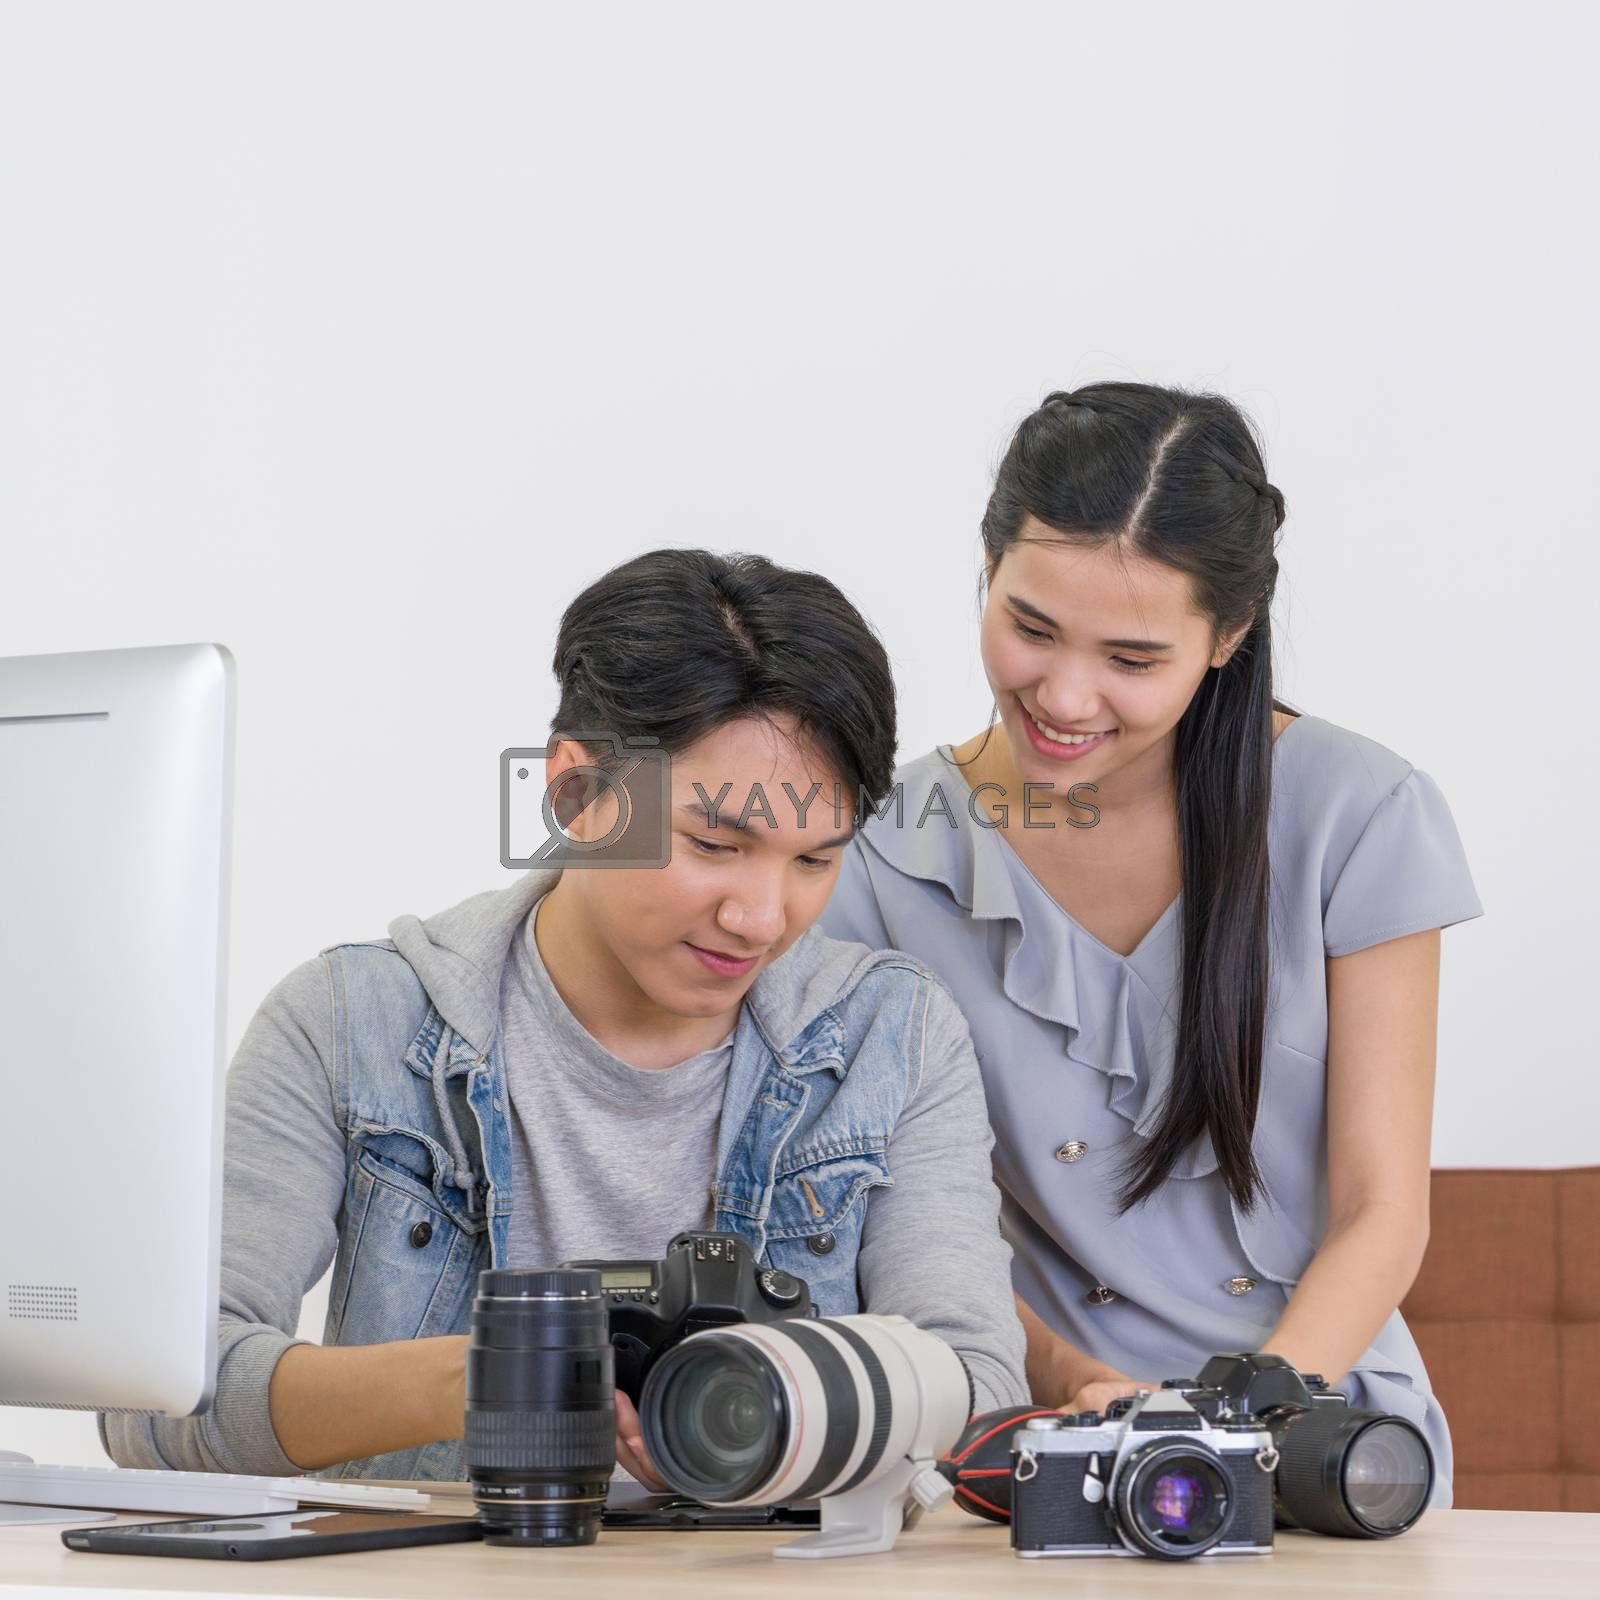 Asian photographer and model looking at pictures taken on the camera screen. The young model is very satisfied with her photo. The atmosphere in the photo studio.